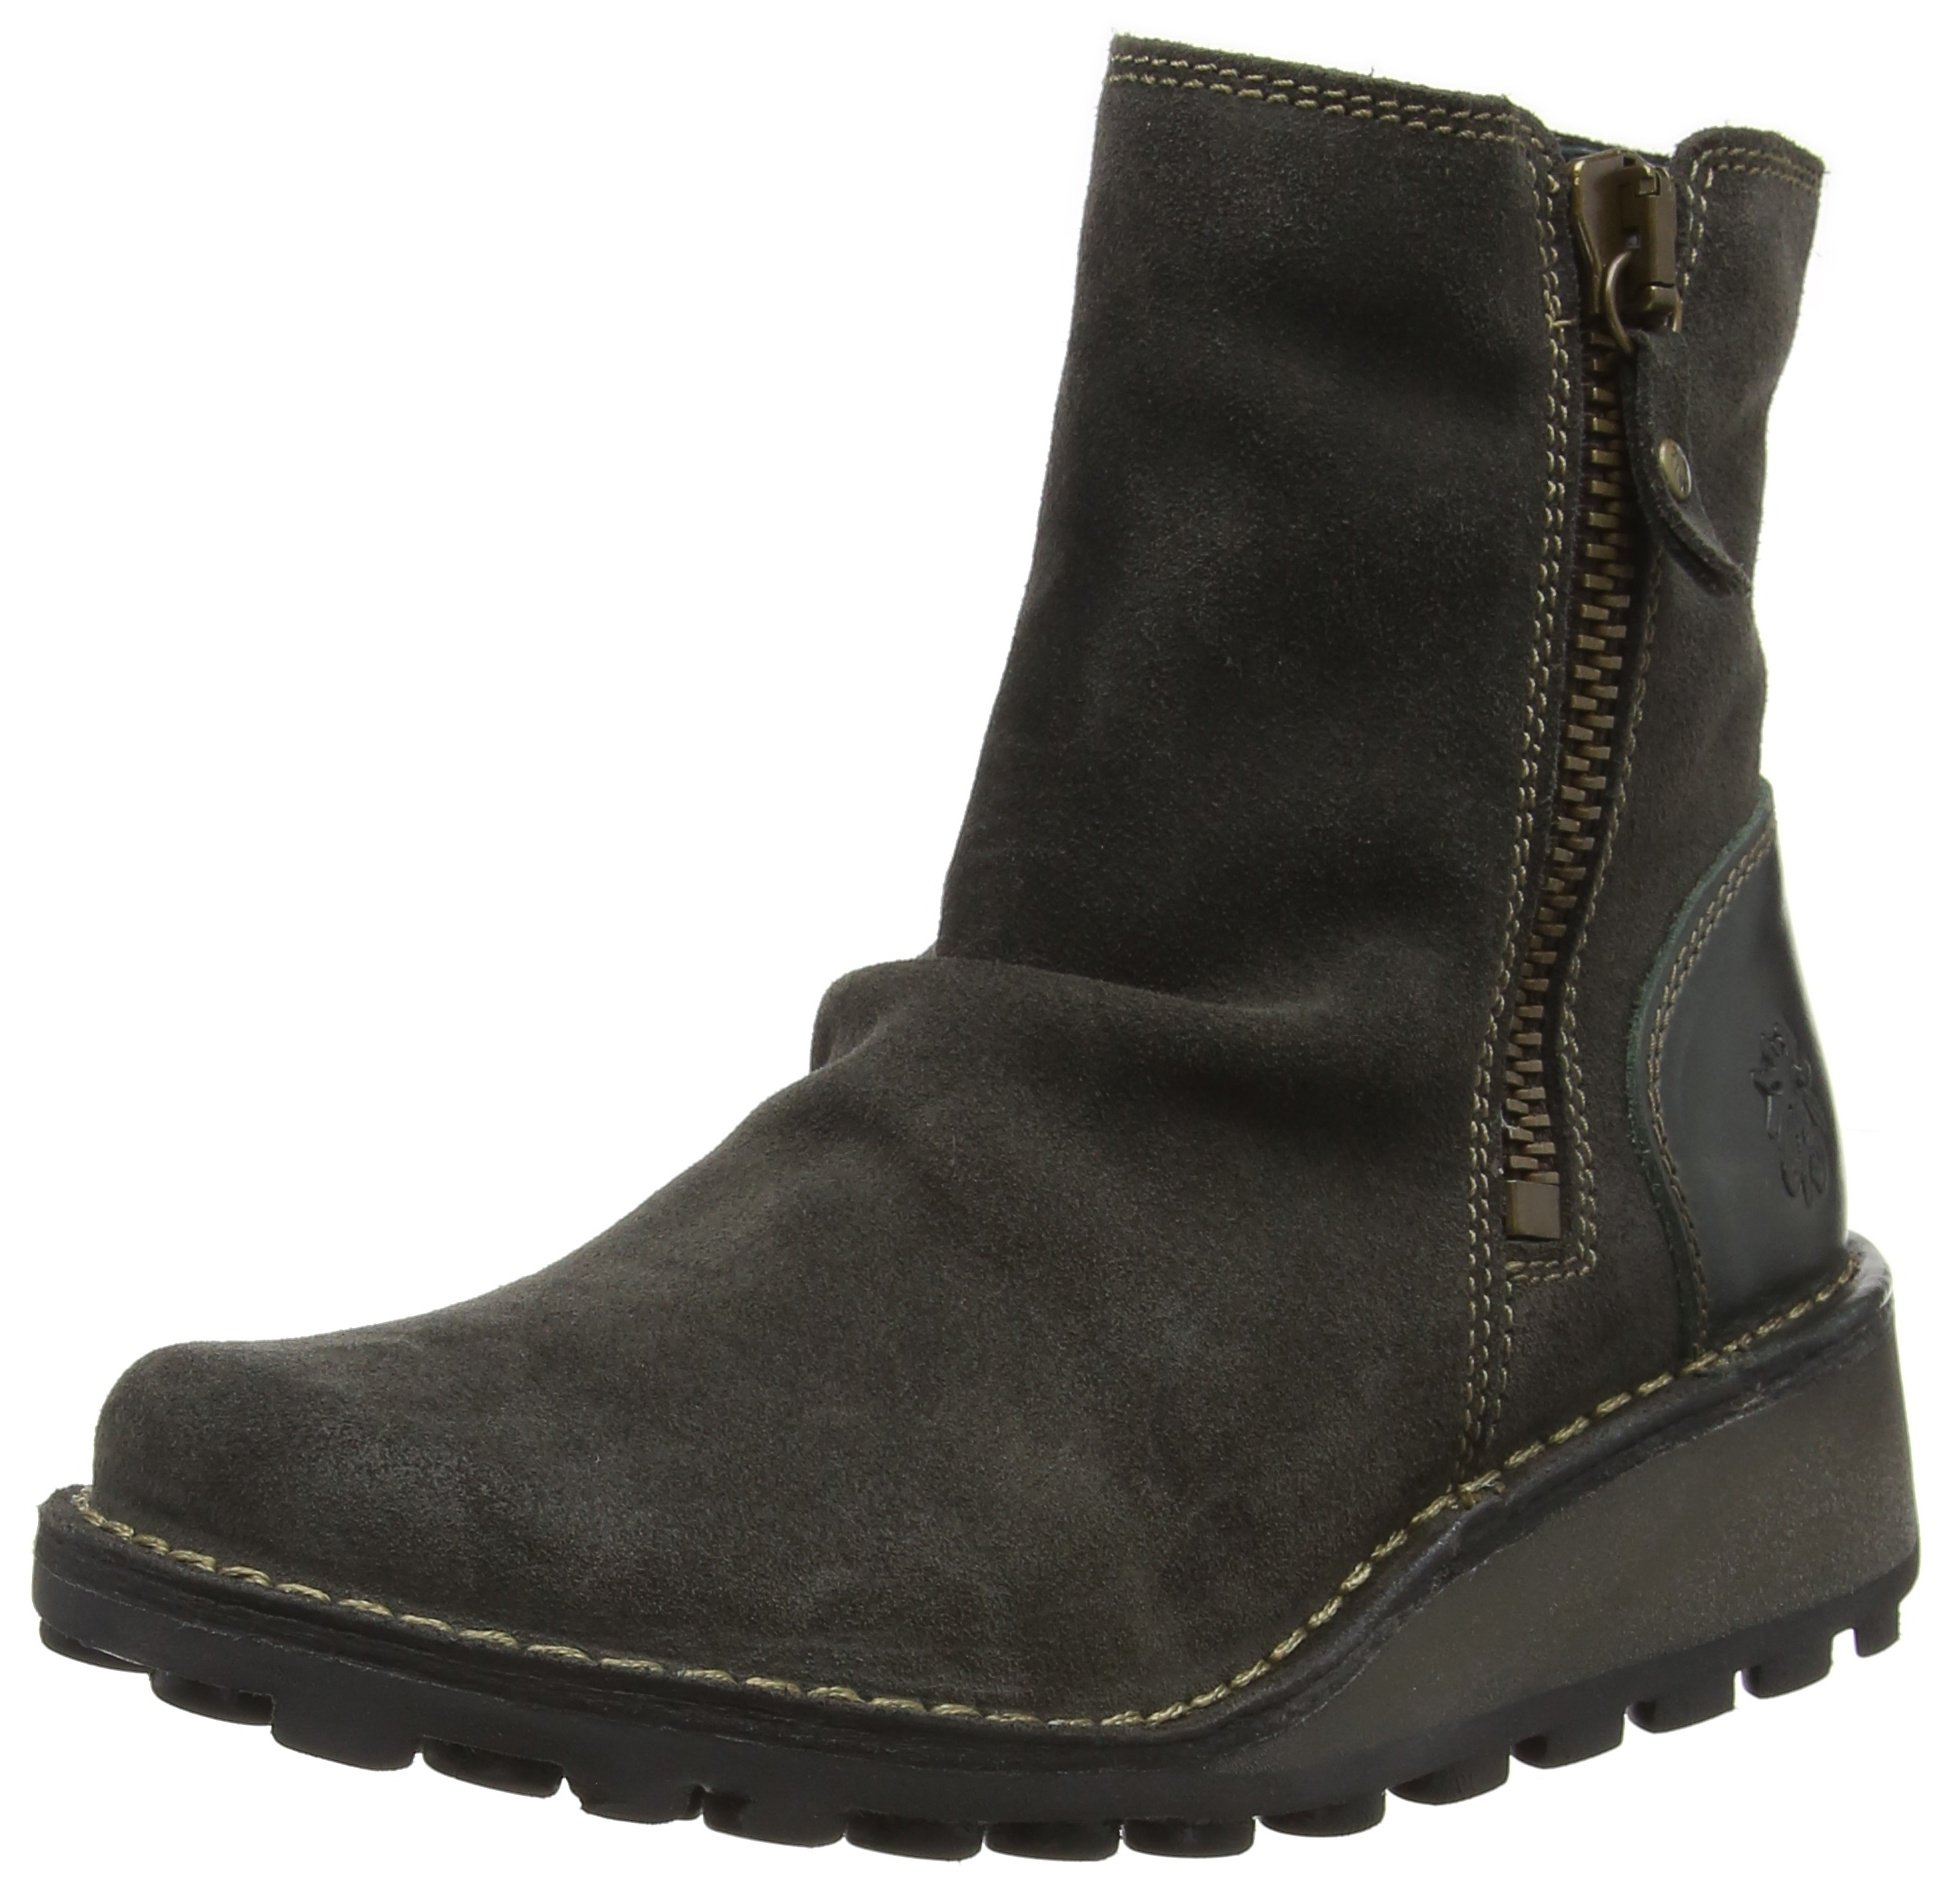 FLY London Women's MONG944FLY Ankle Boot, Diesel Oil Suede/Rug, 39 M EU (8-8.5 US)